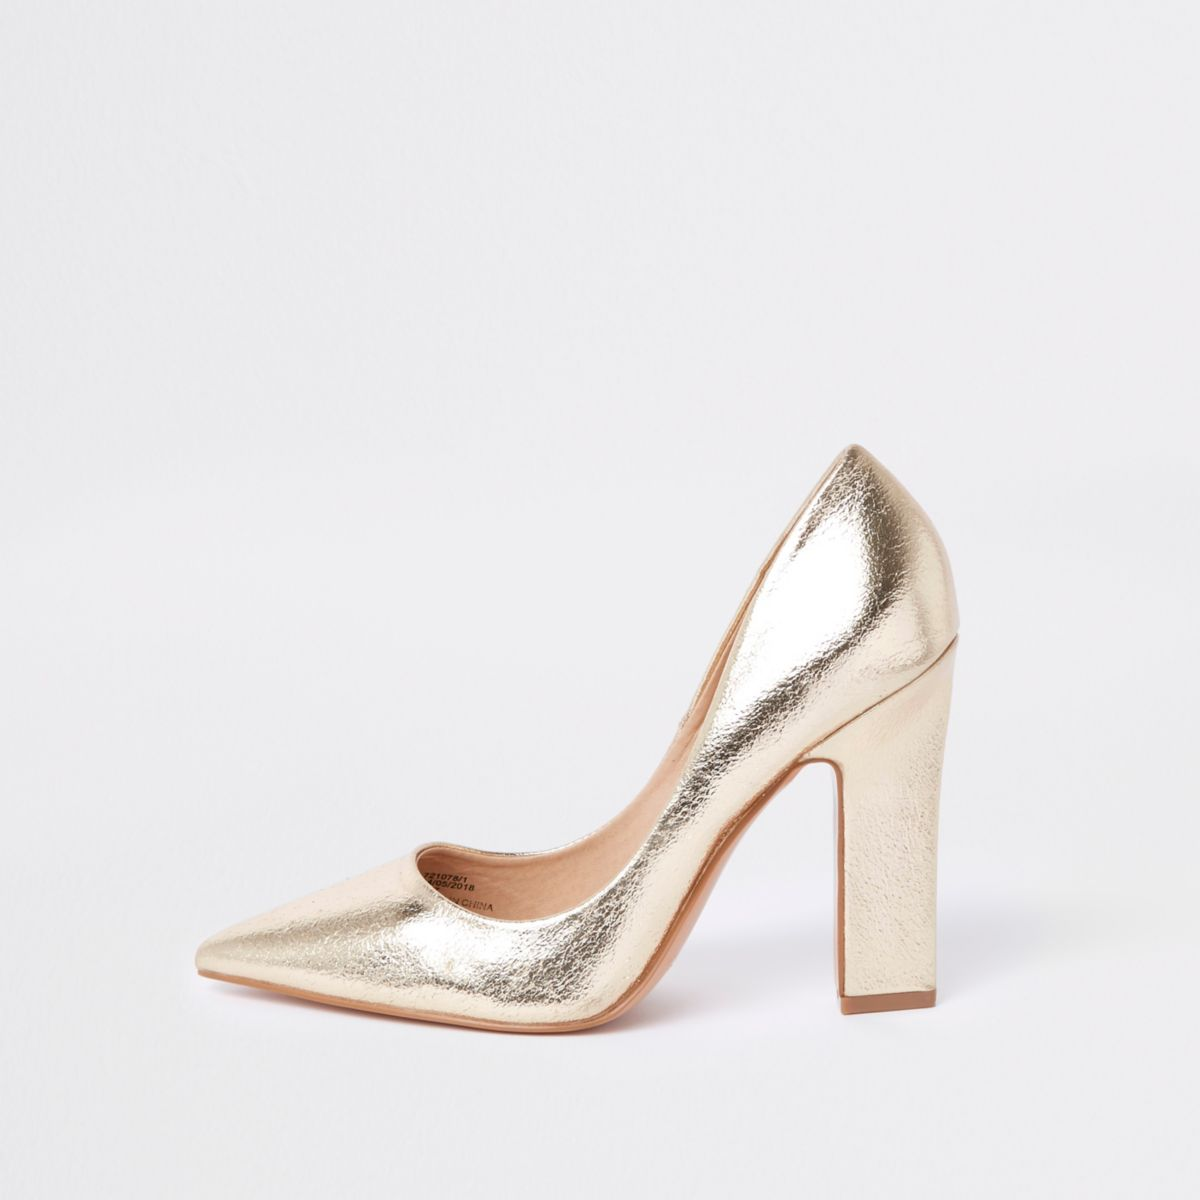 Gold metallic pumps